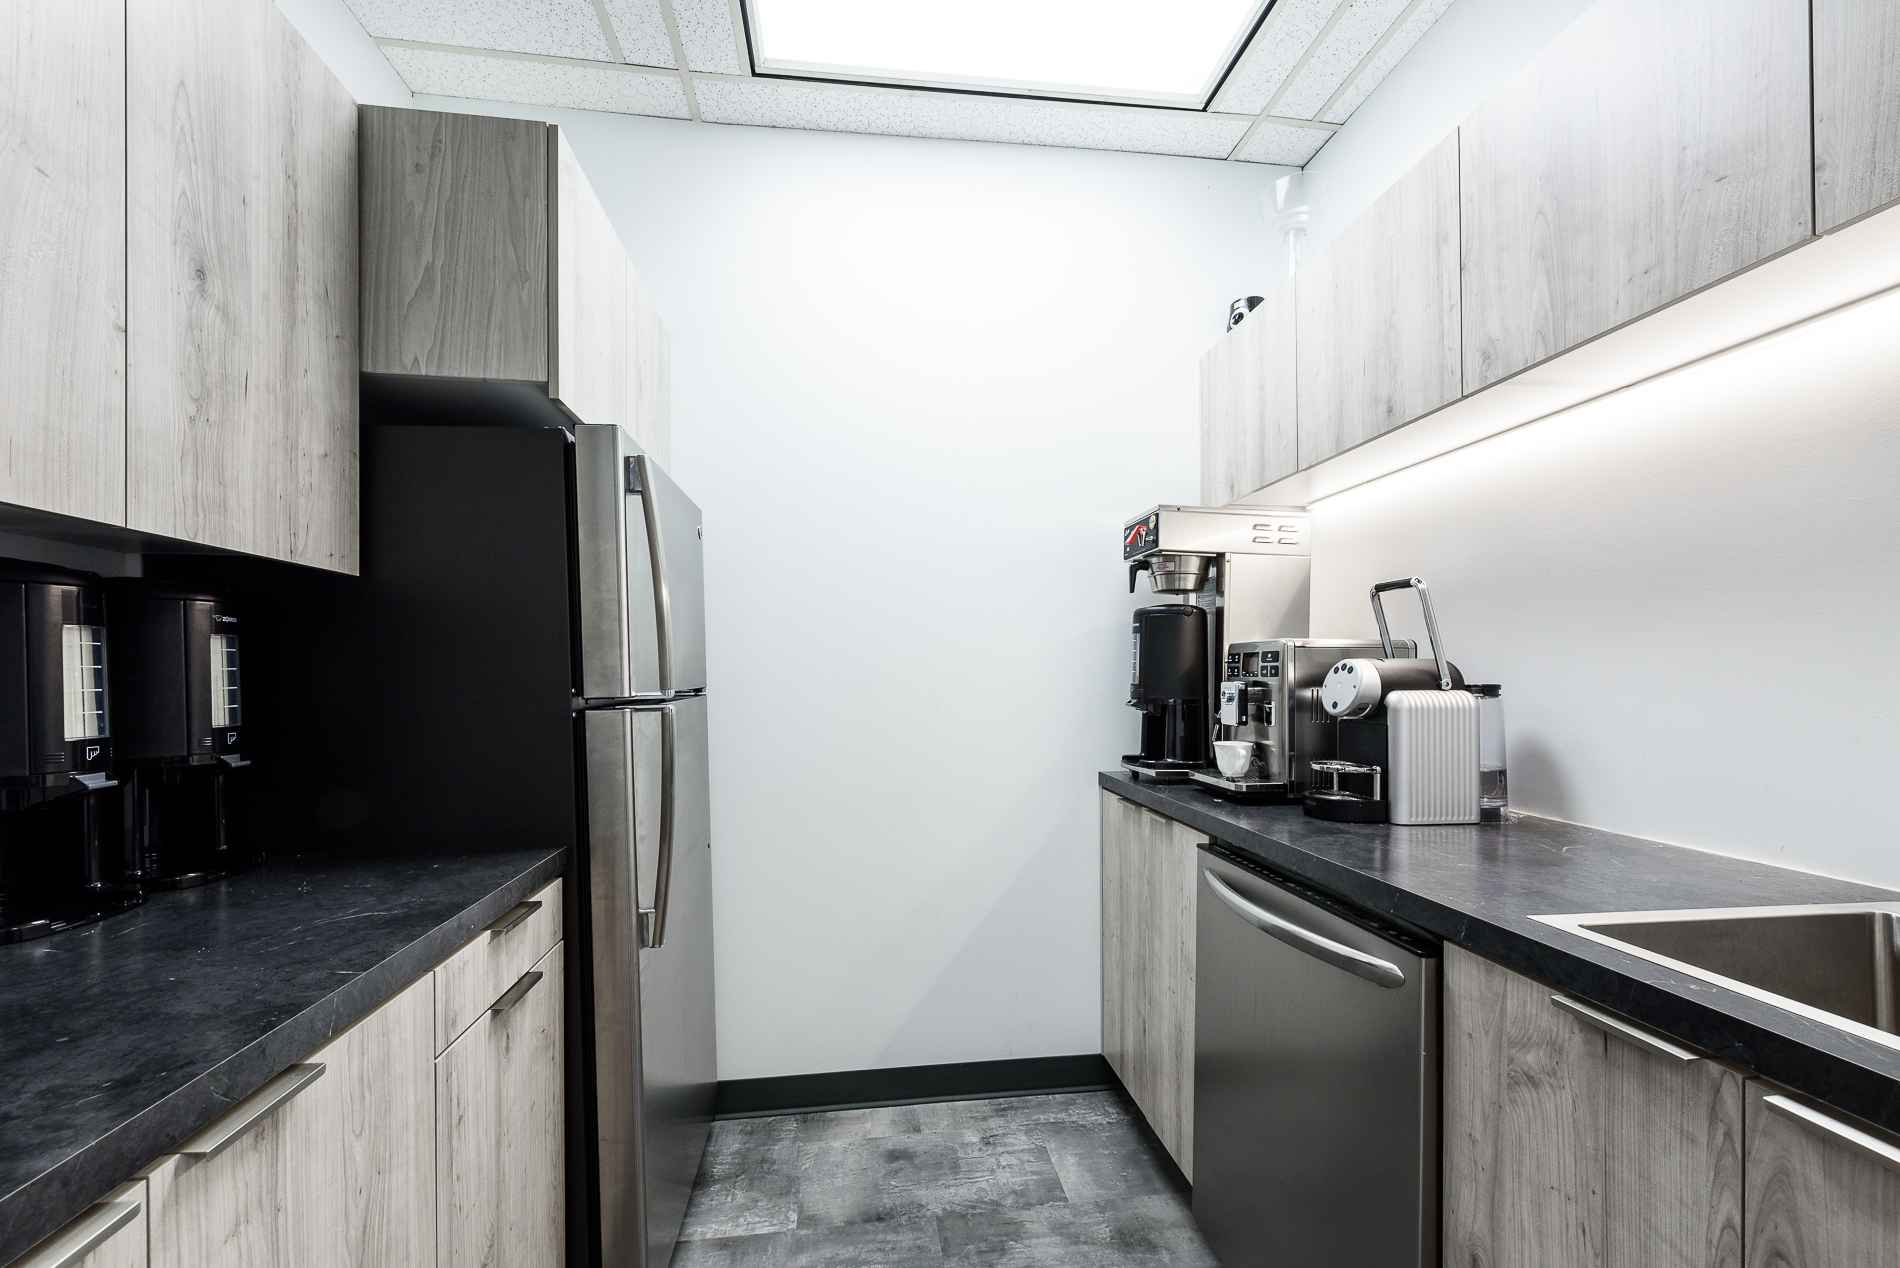 corporate kitchenette